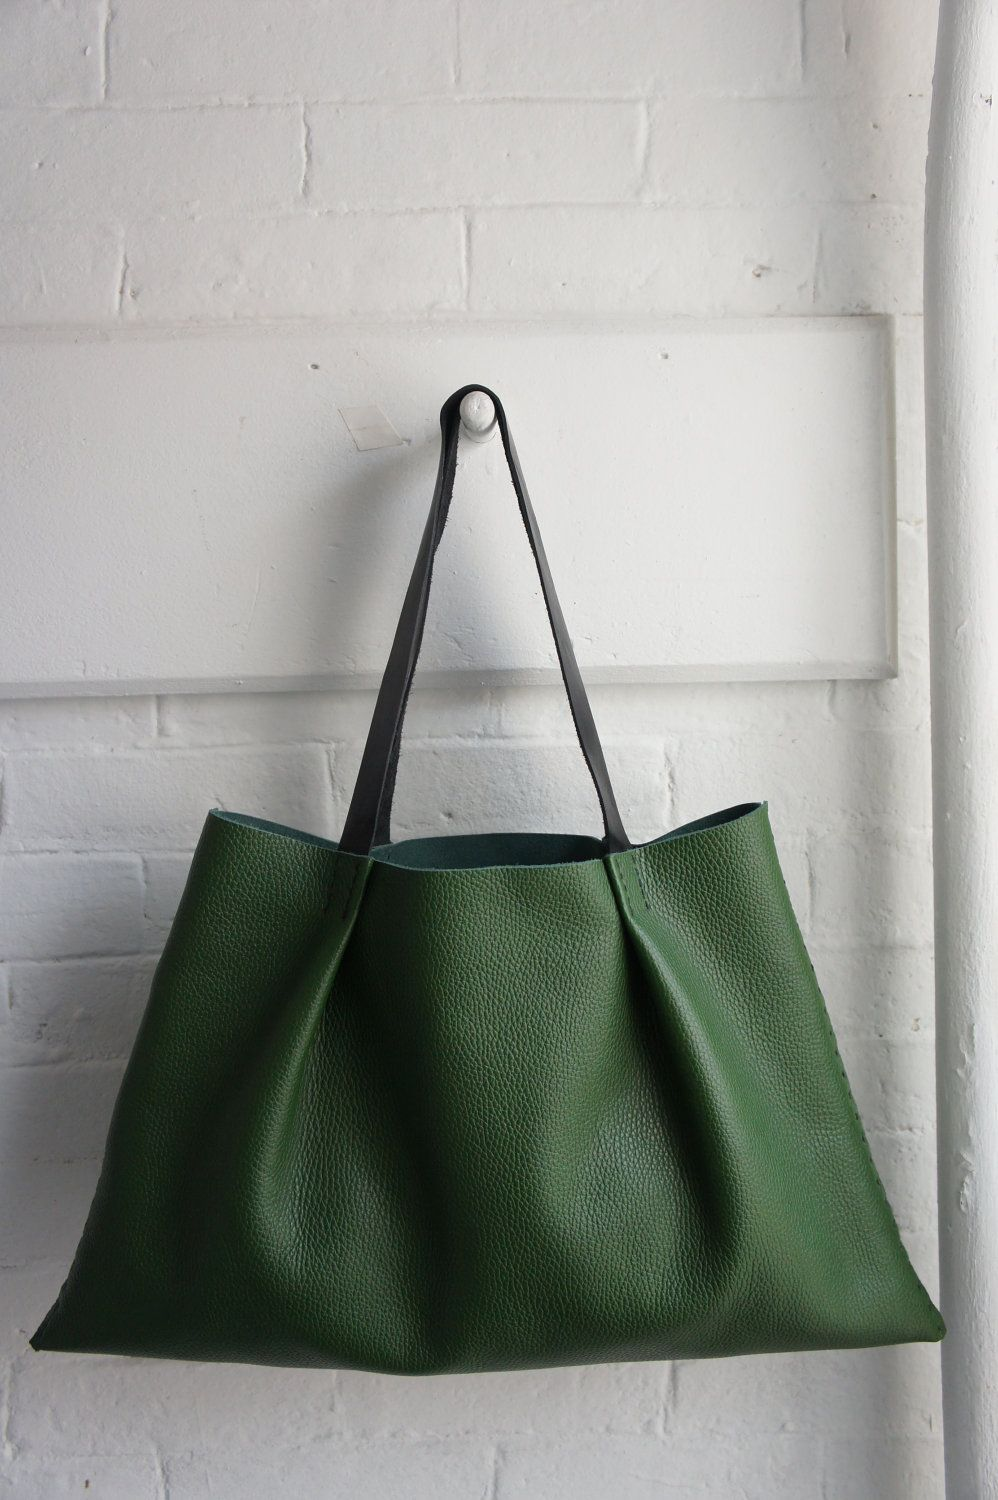 Items similar to Odeon Leather  Bag - Green on Etsy